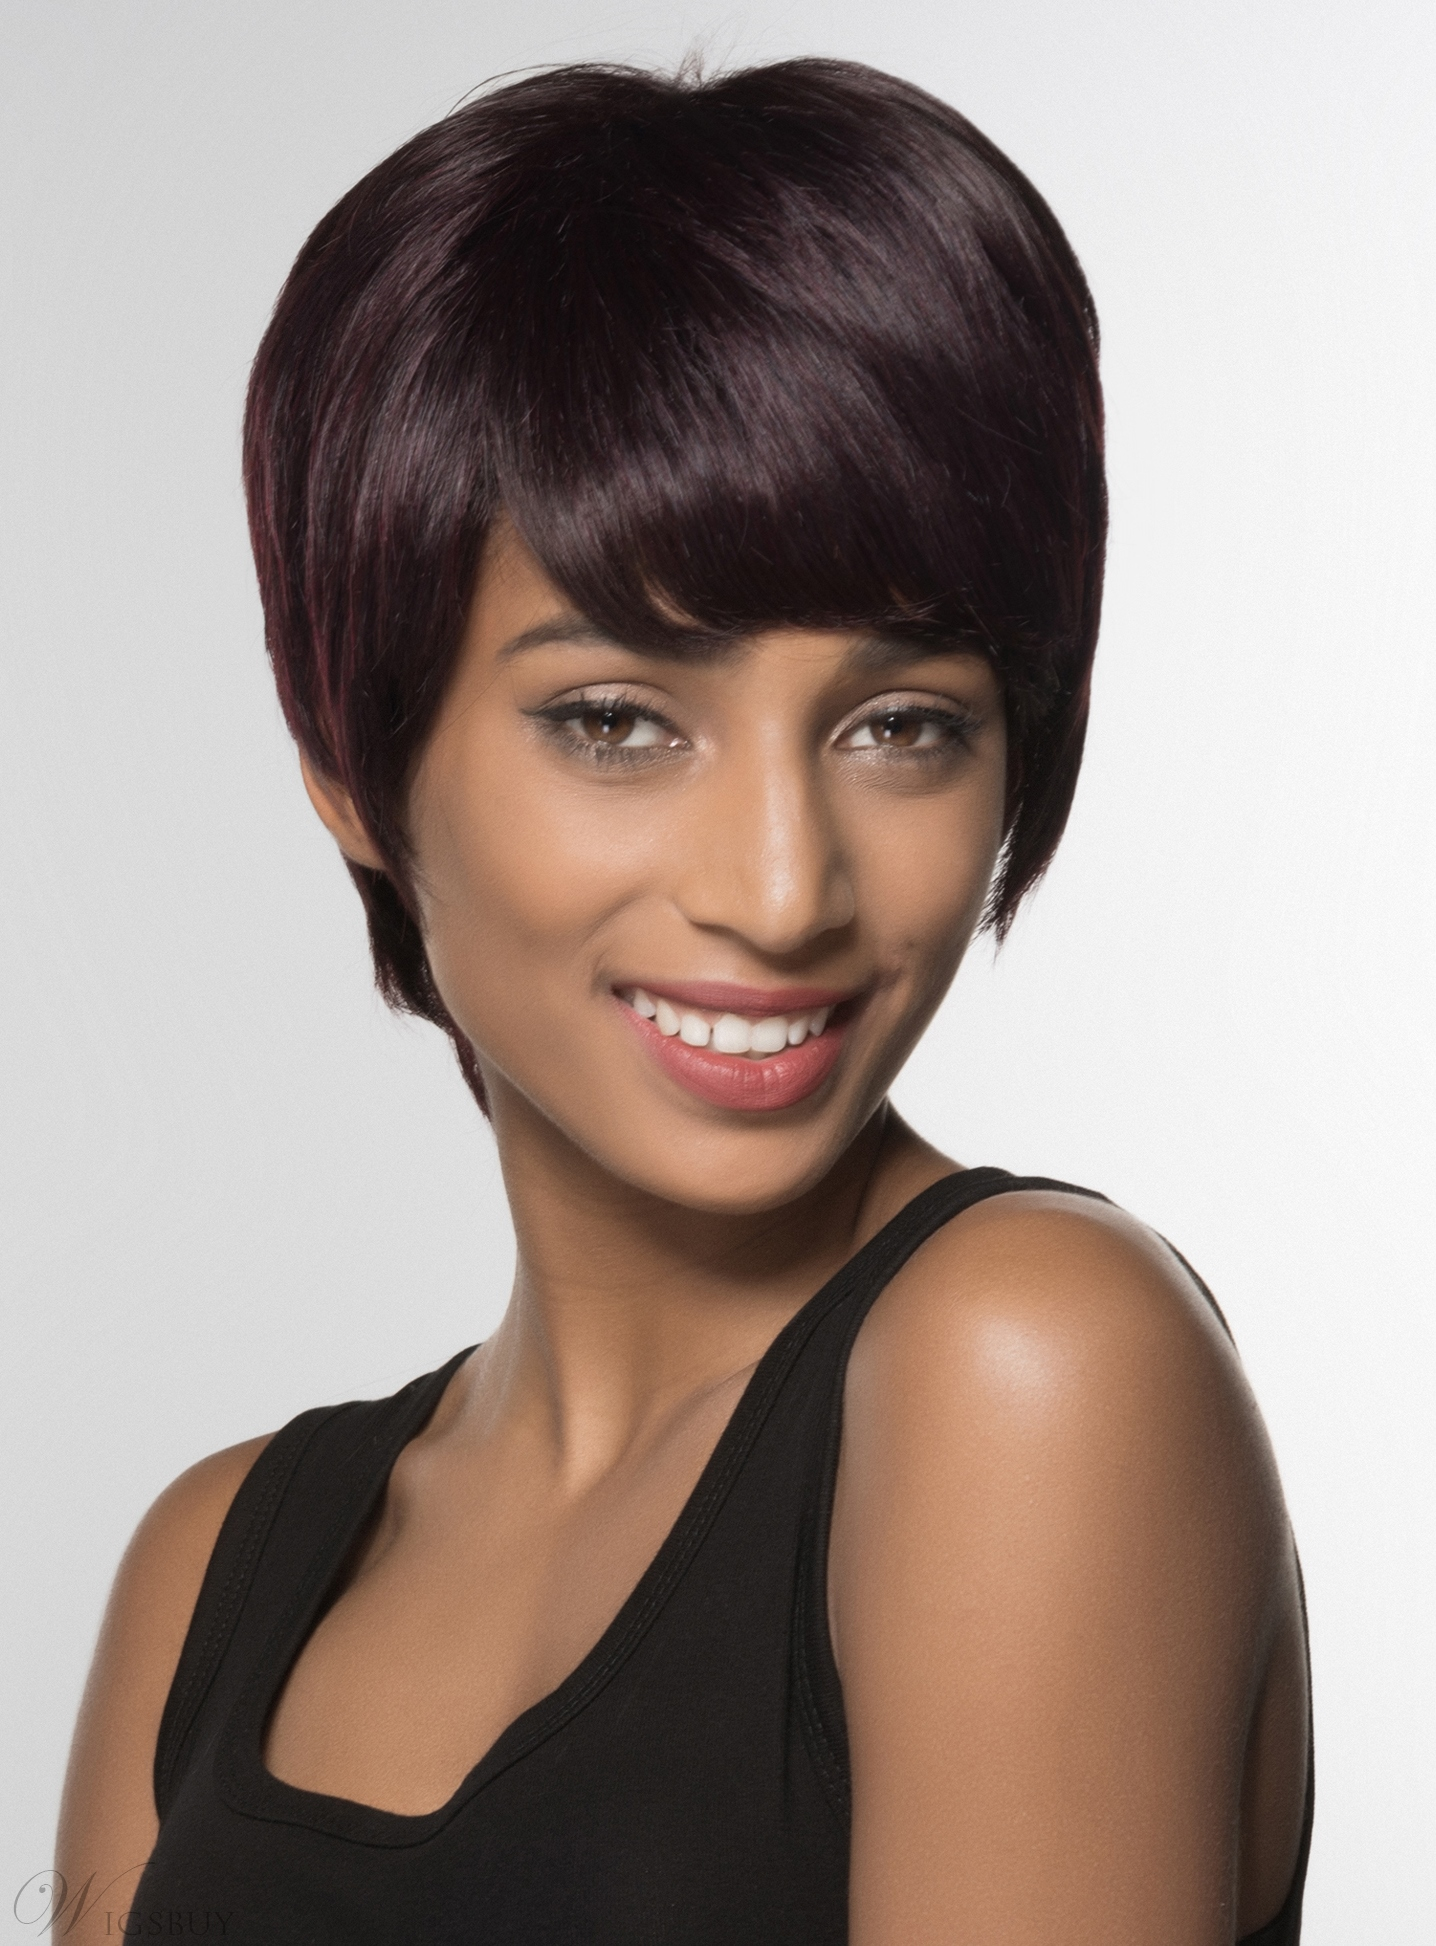 Mishair® Short Straight Capless Human Hair Wig 6 Inches 12004408